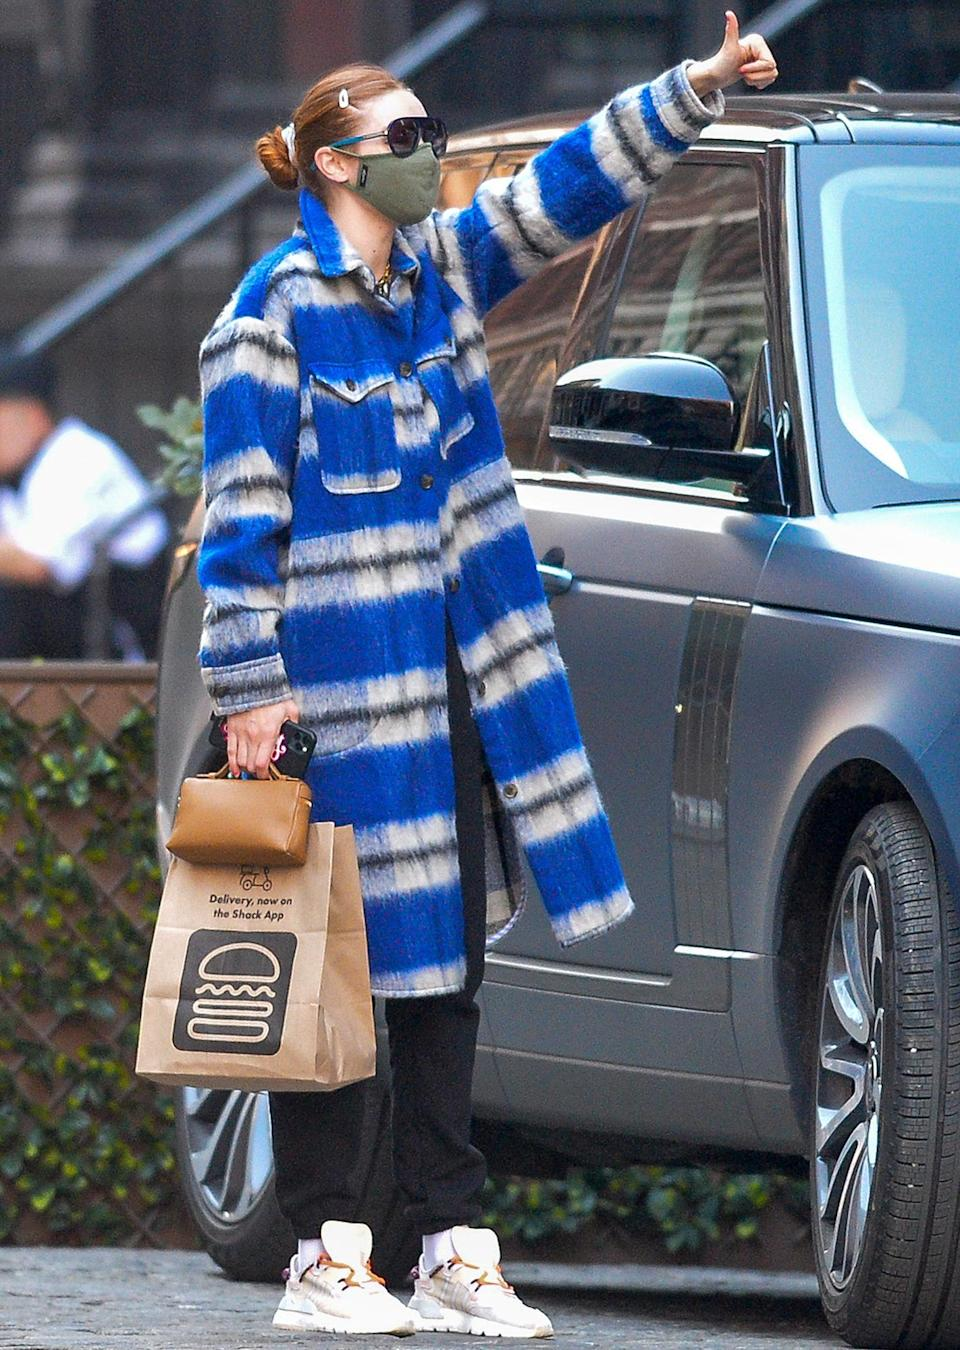 <p>Gigi Hadid sends a thumbs up to fans after grabbing Shake Shack on Thursday in N.Y.C.</p>